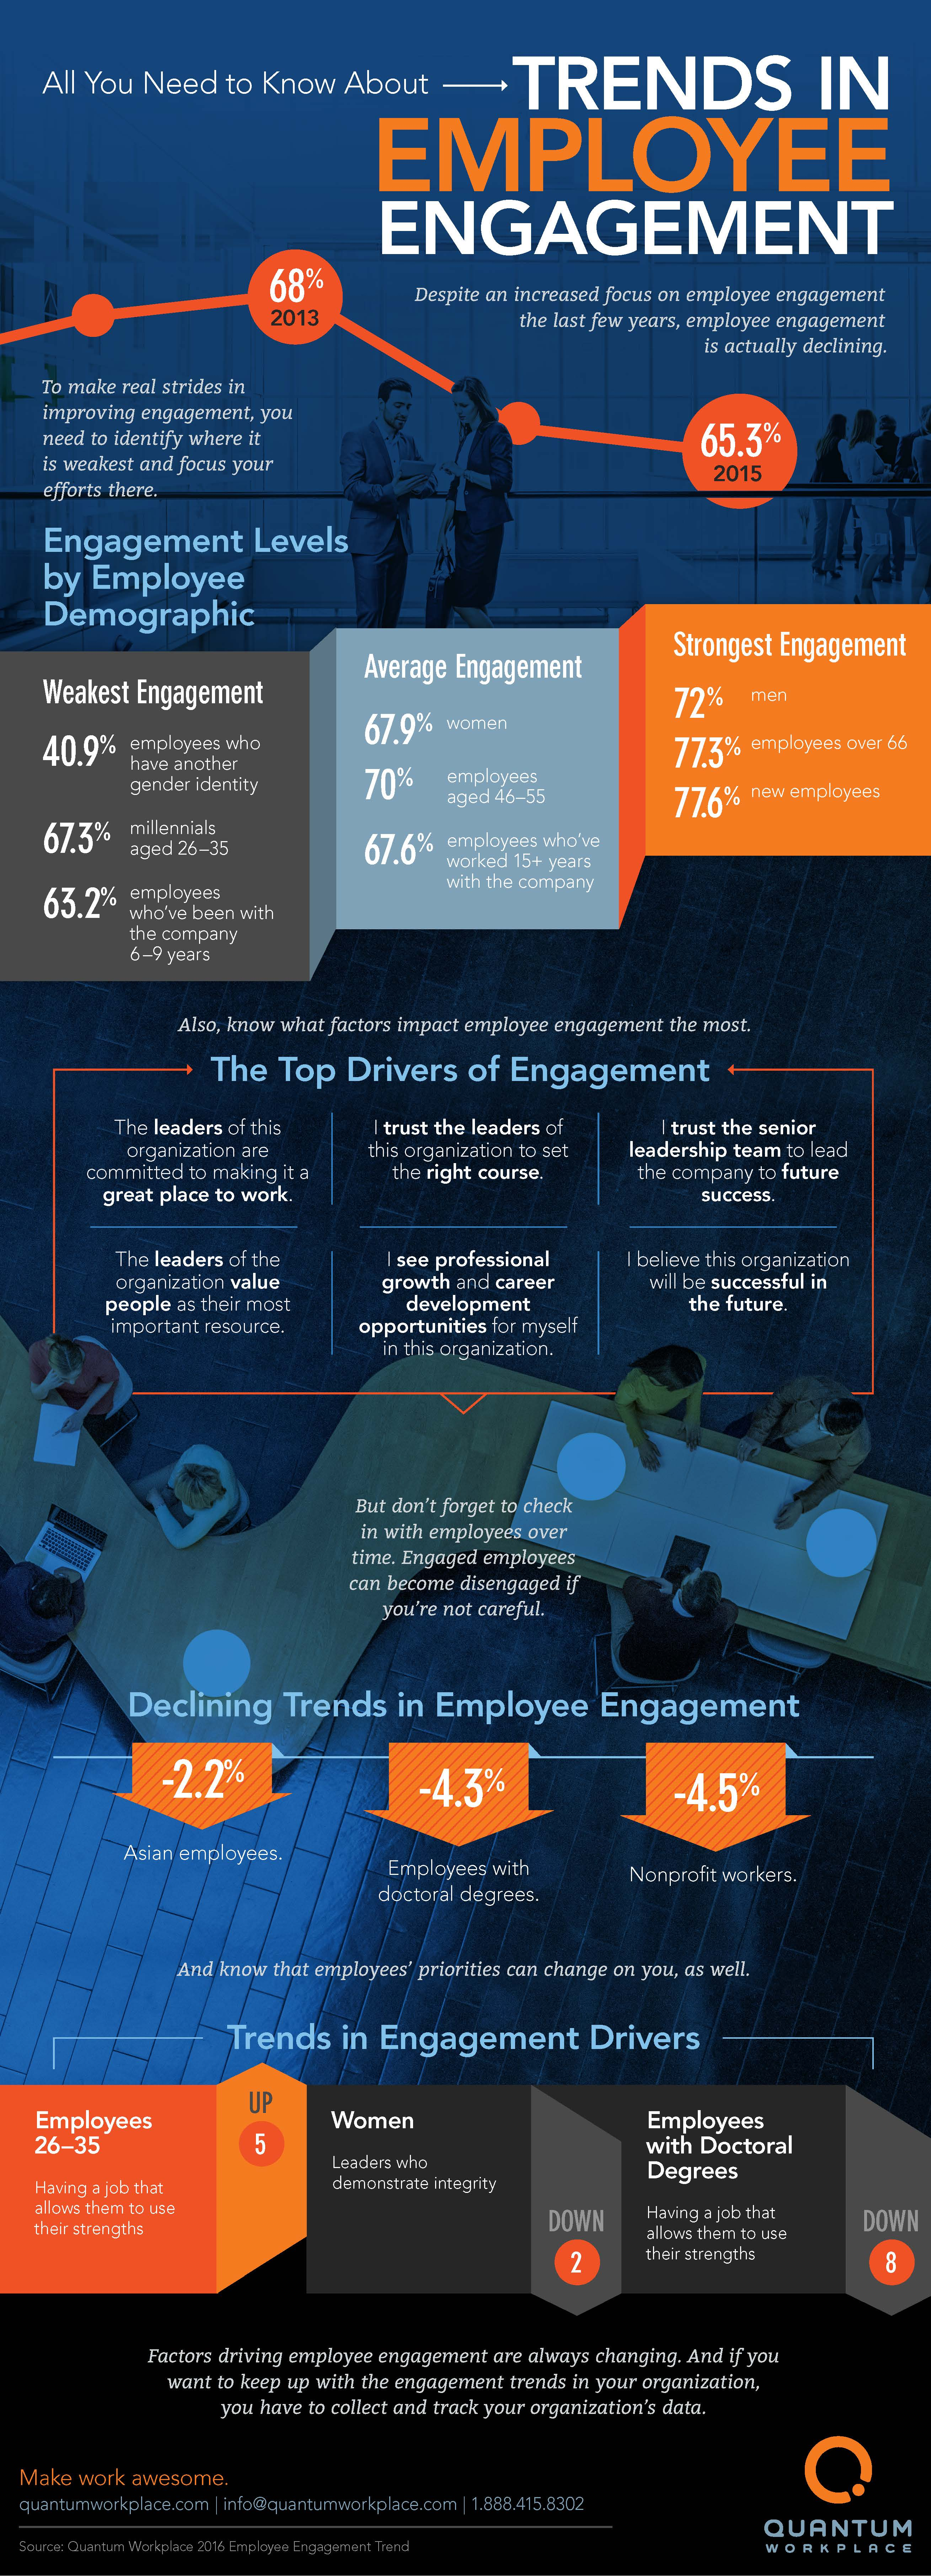 QW-TrendsInfographic-972_Page_1